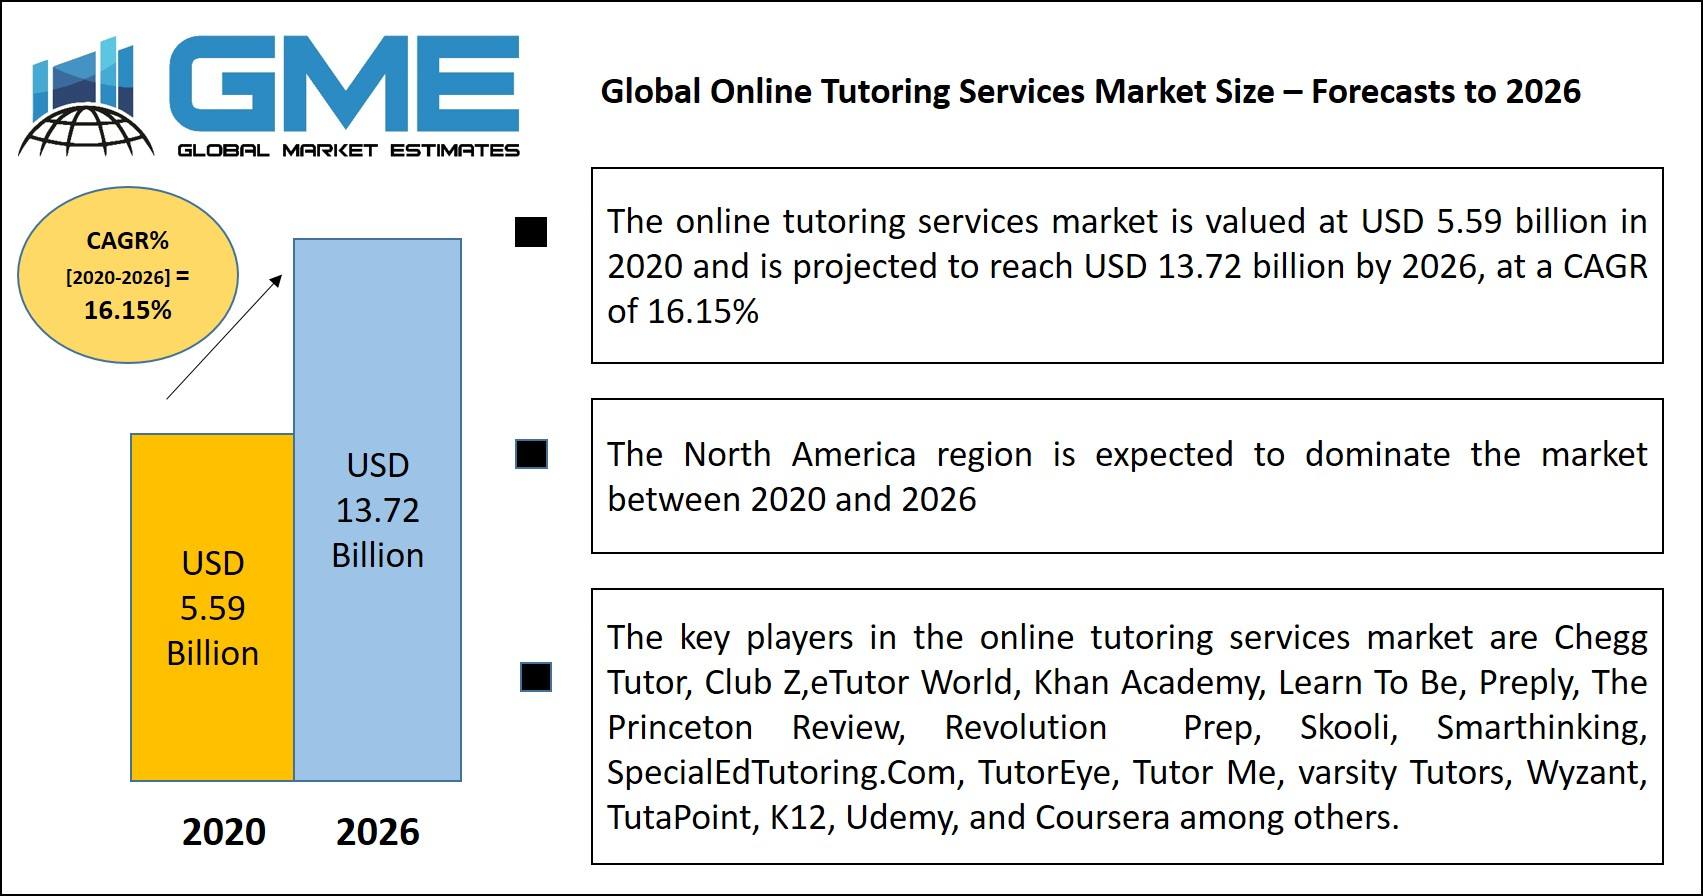 Online Tutoring Services Market - Forecast To 2026